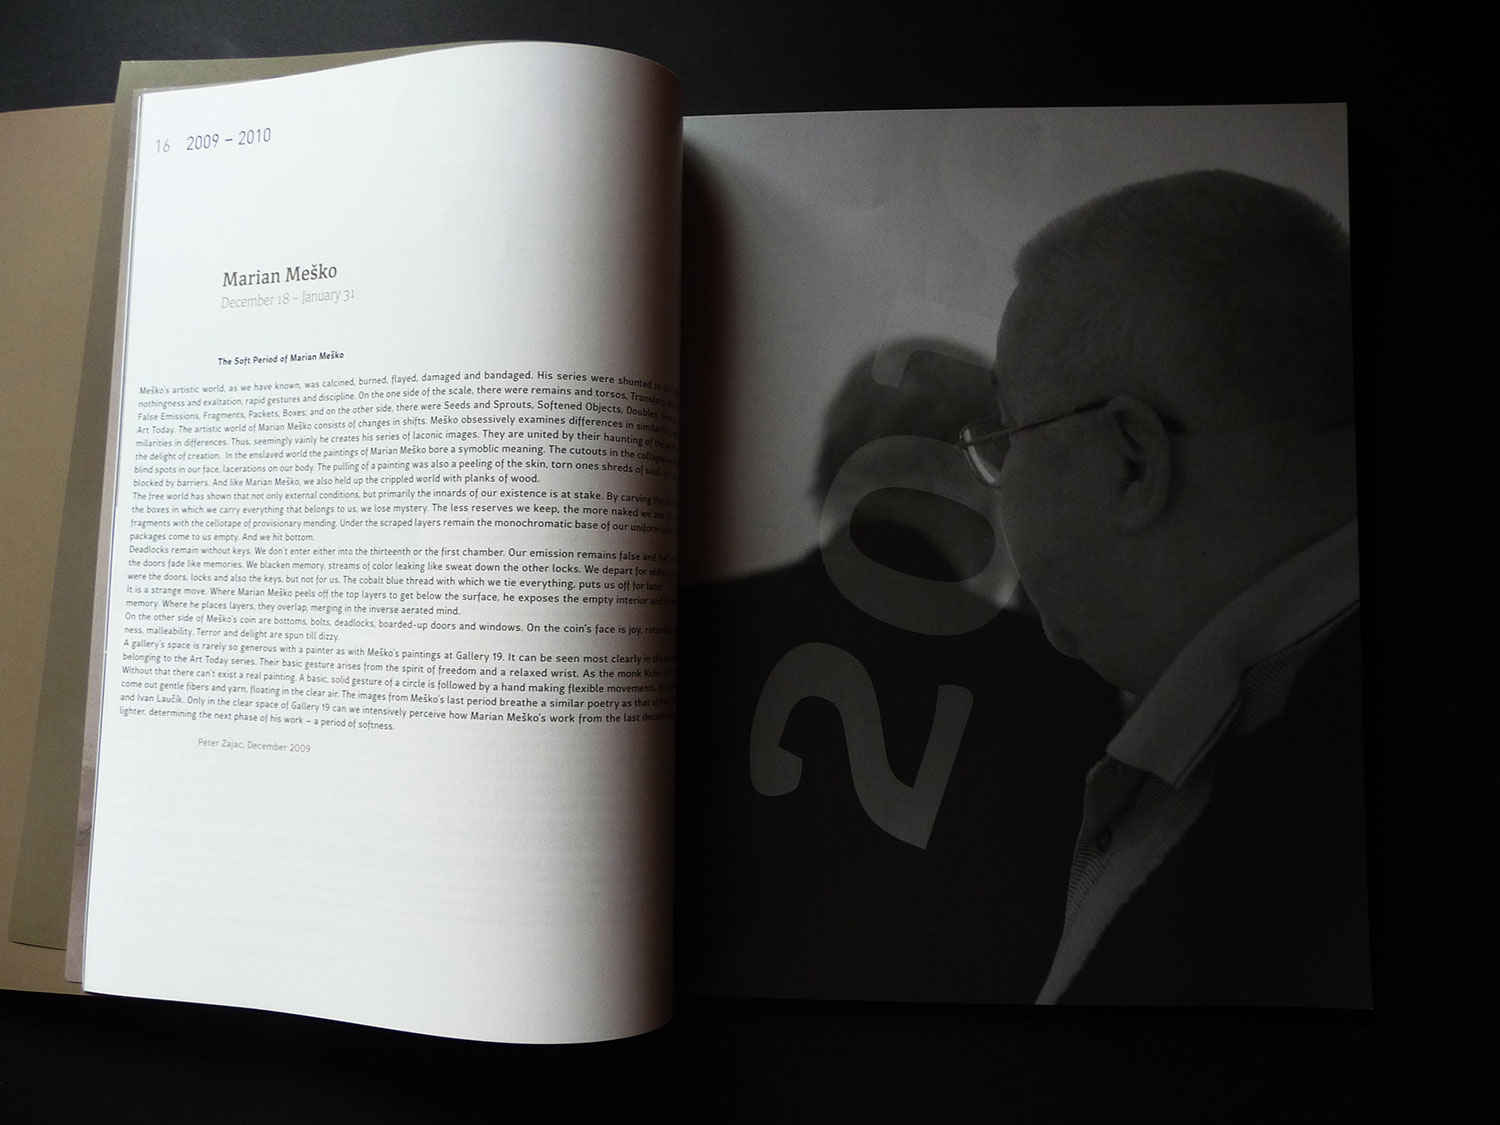 Gallery 19, annual catalogue, 2009-2014